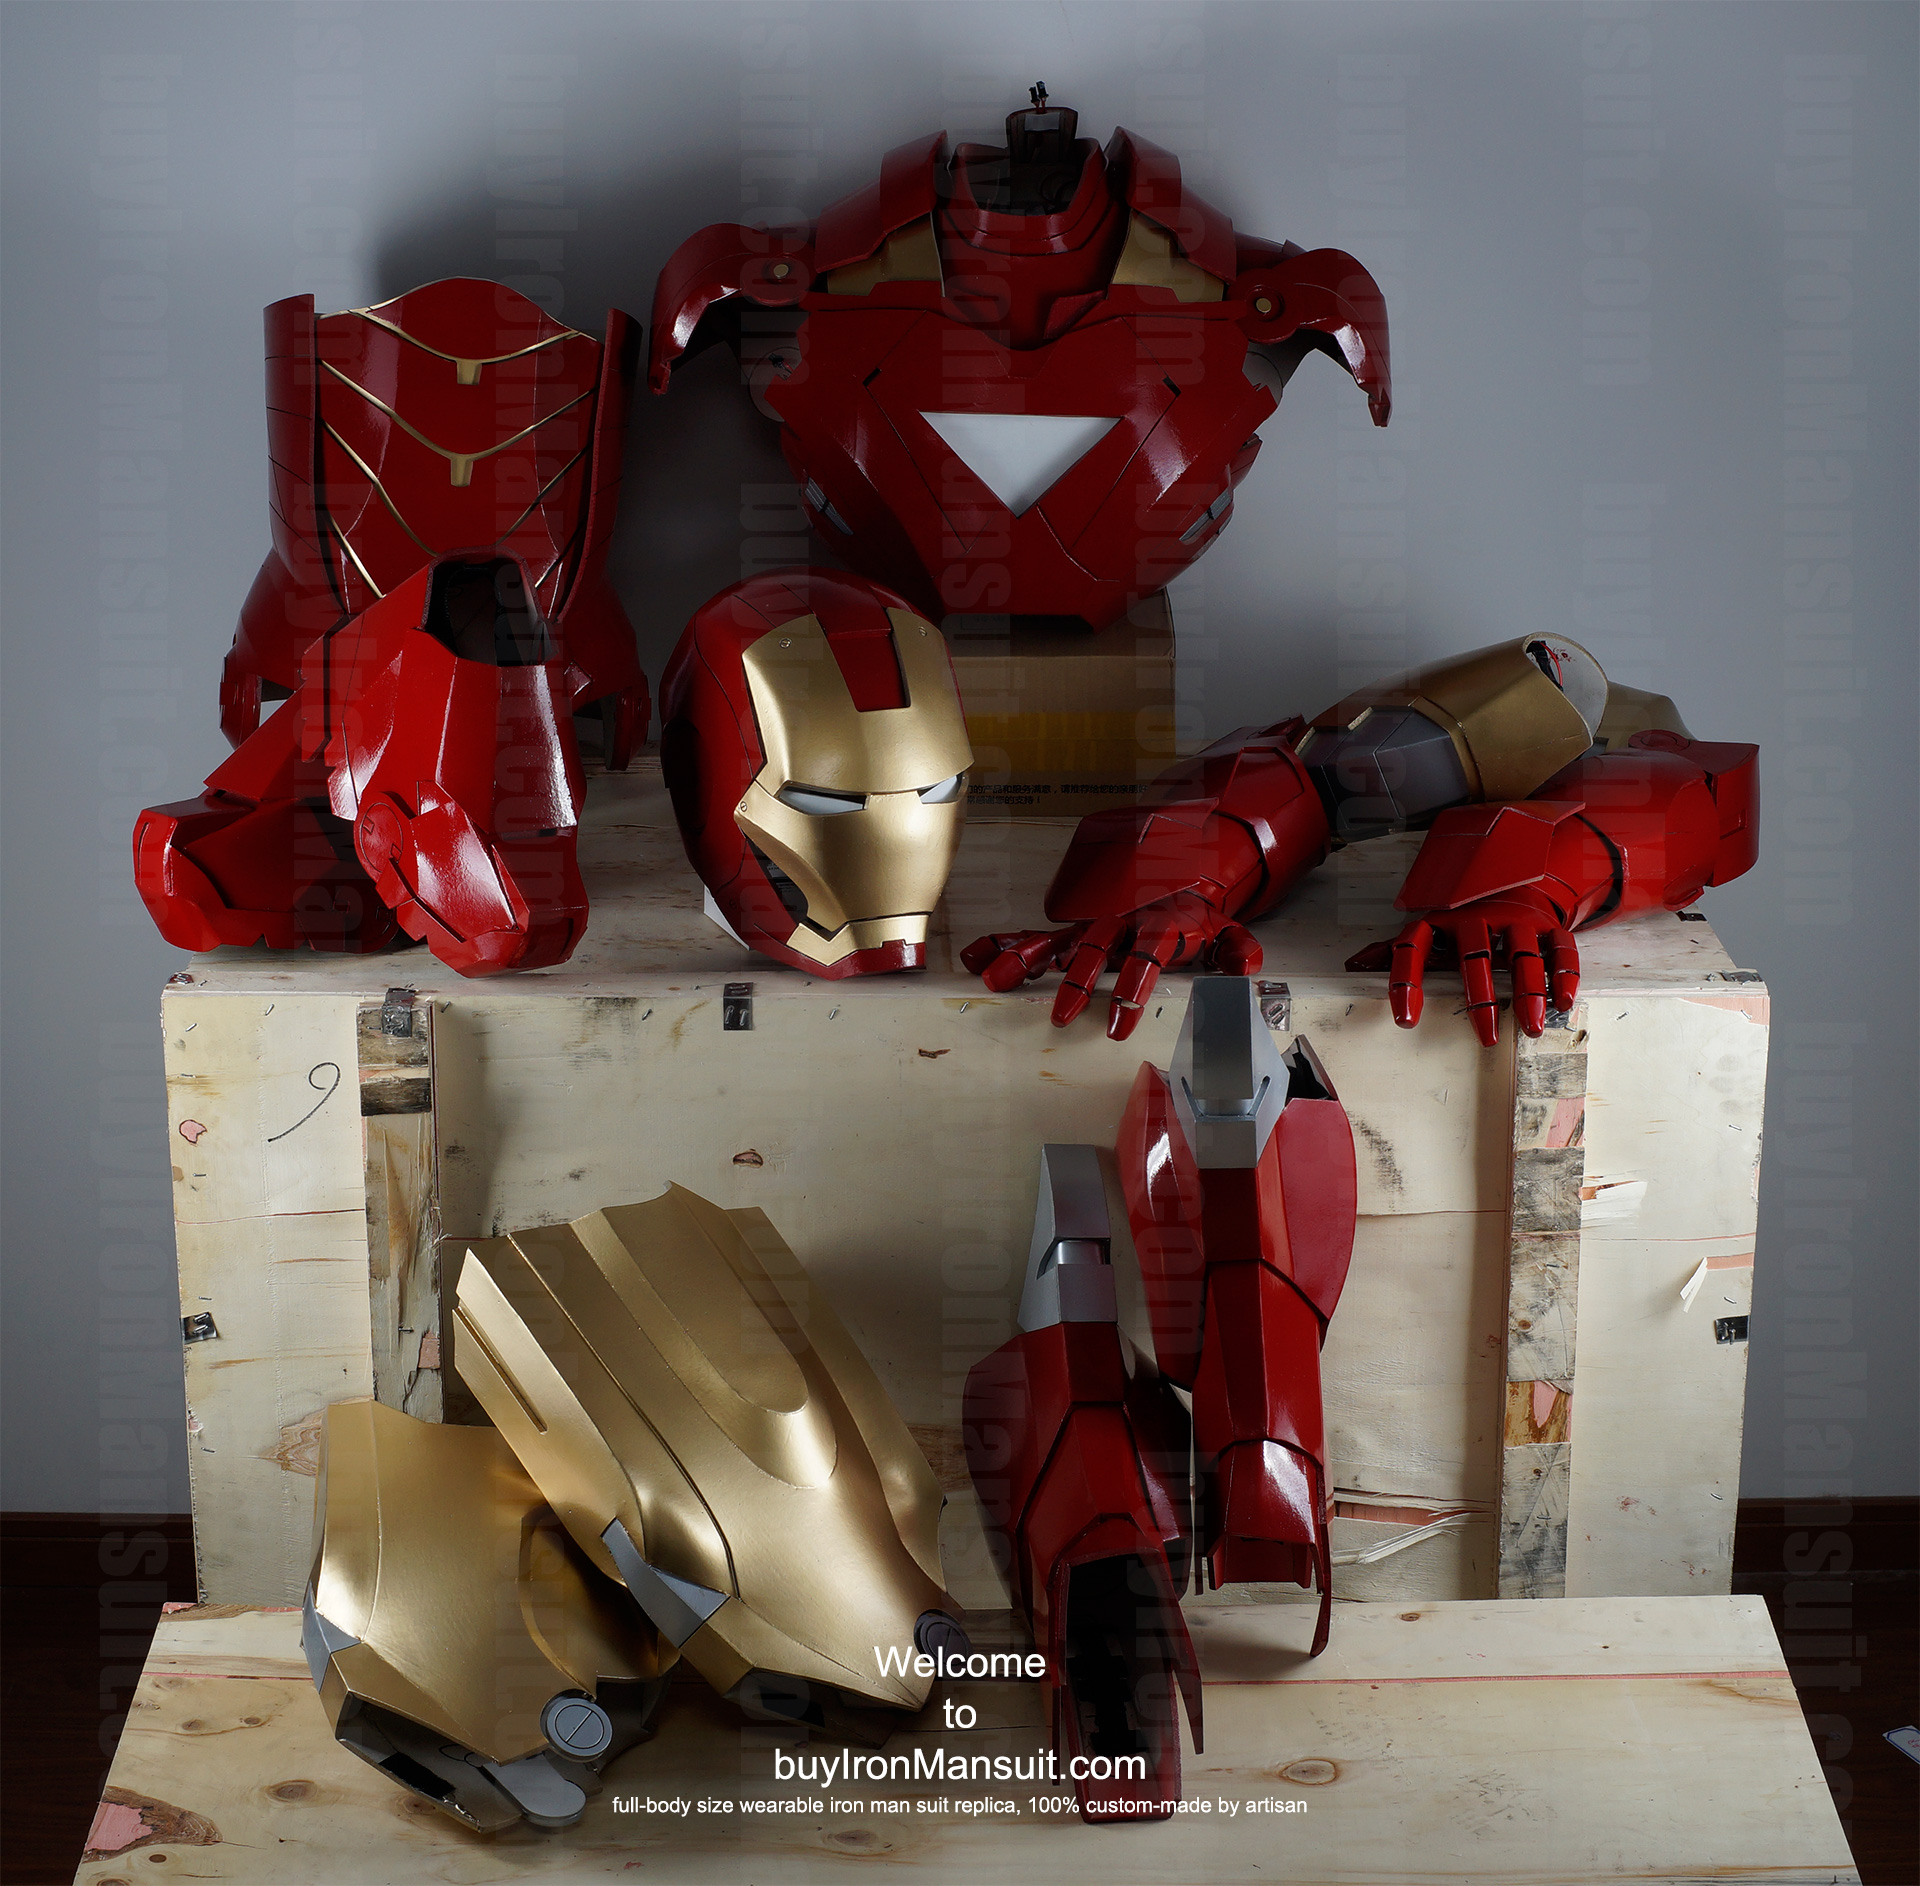 Buy Iron Man Suit Replica Real Iron Man Suit Full